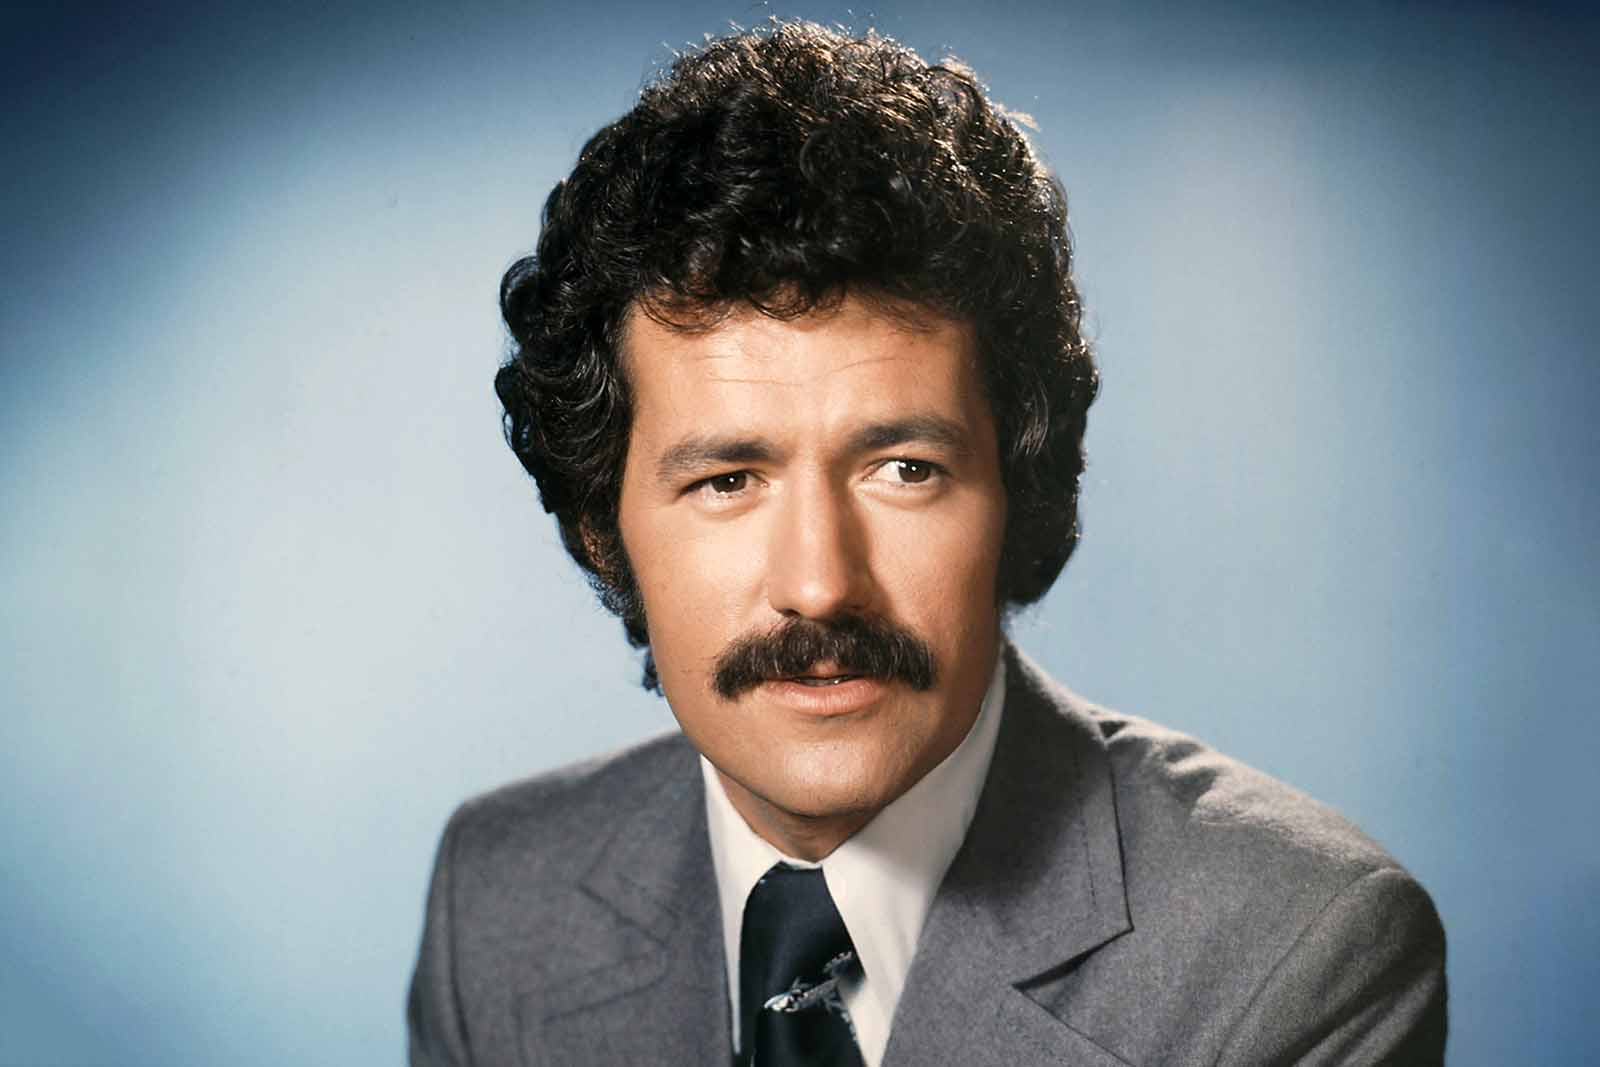 Legendary 'Jeopardy' host Alex Trebek tragically lost his colon cancer battle on Sunday morning. Take a look at his legacy as a game show host.